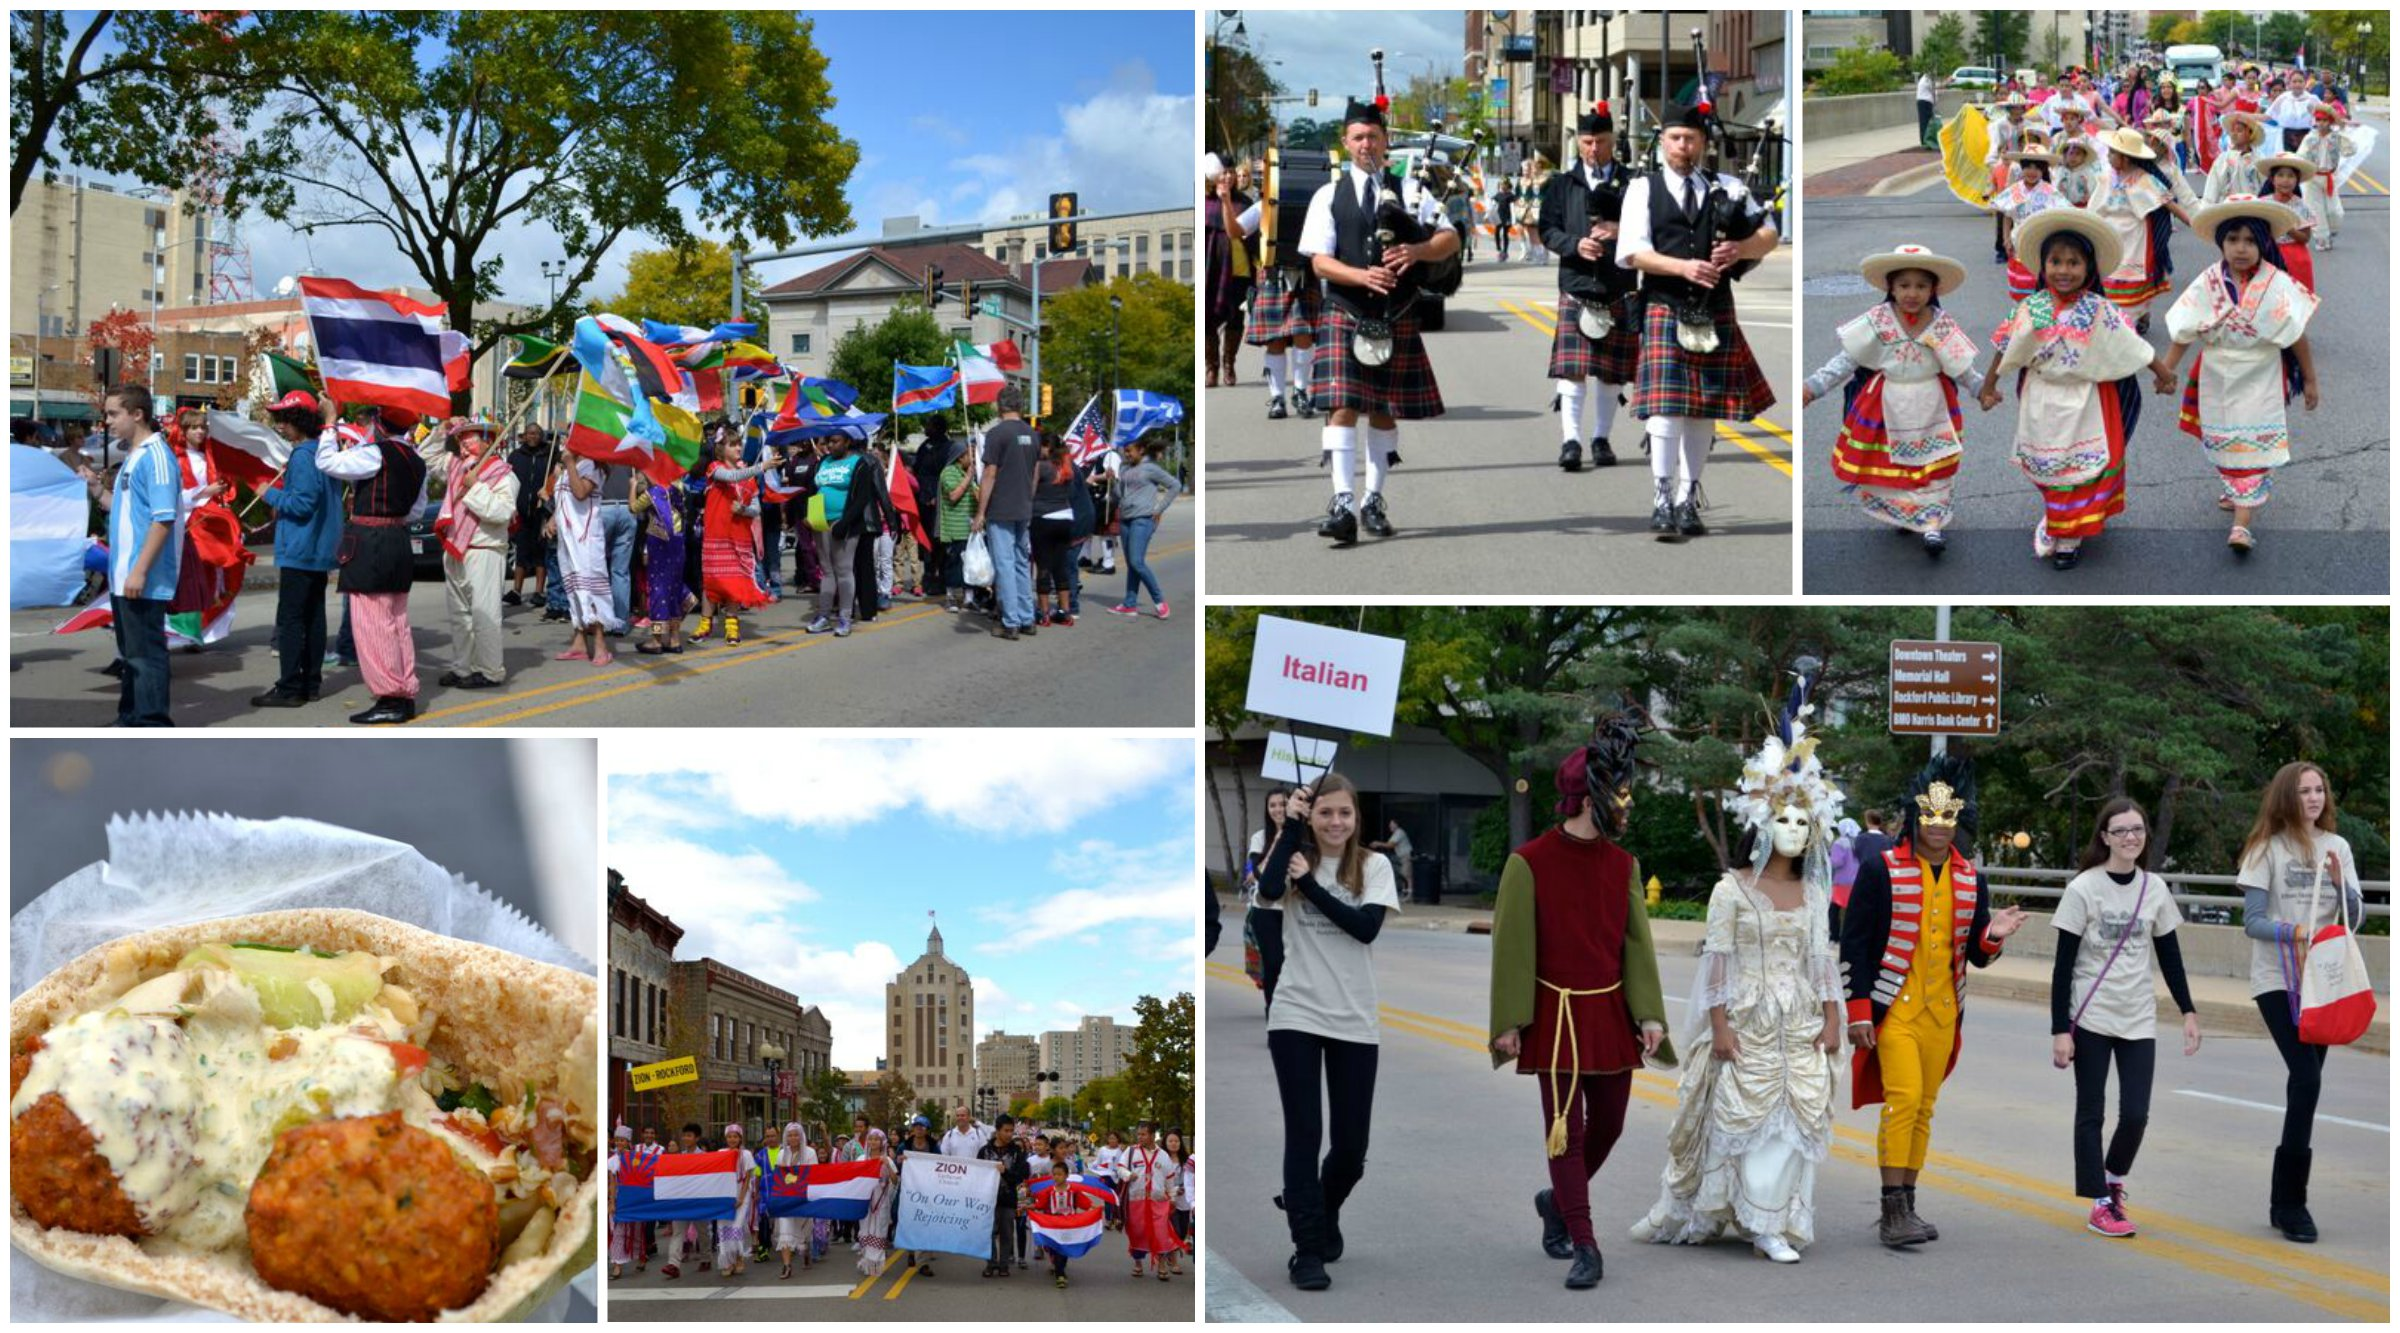 MidtownEthnicParadeandFestival_collage